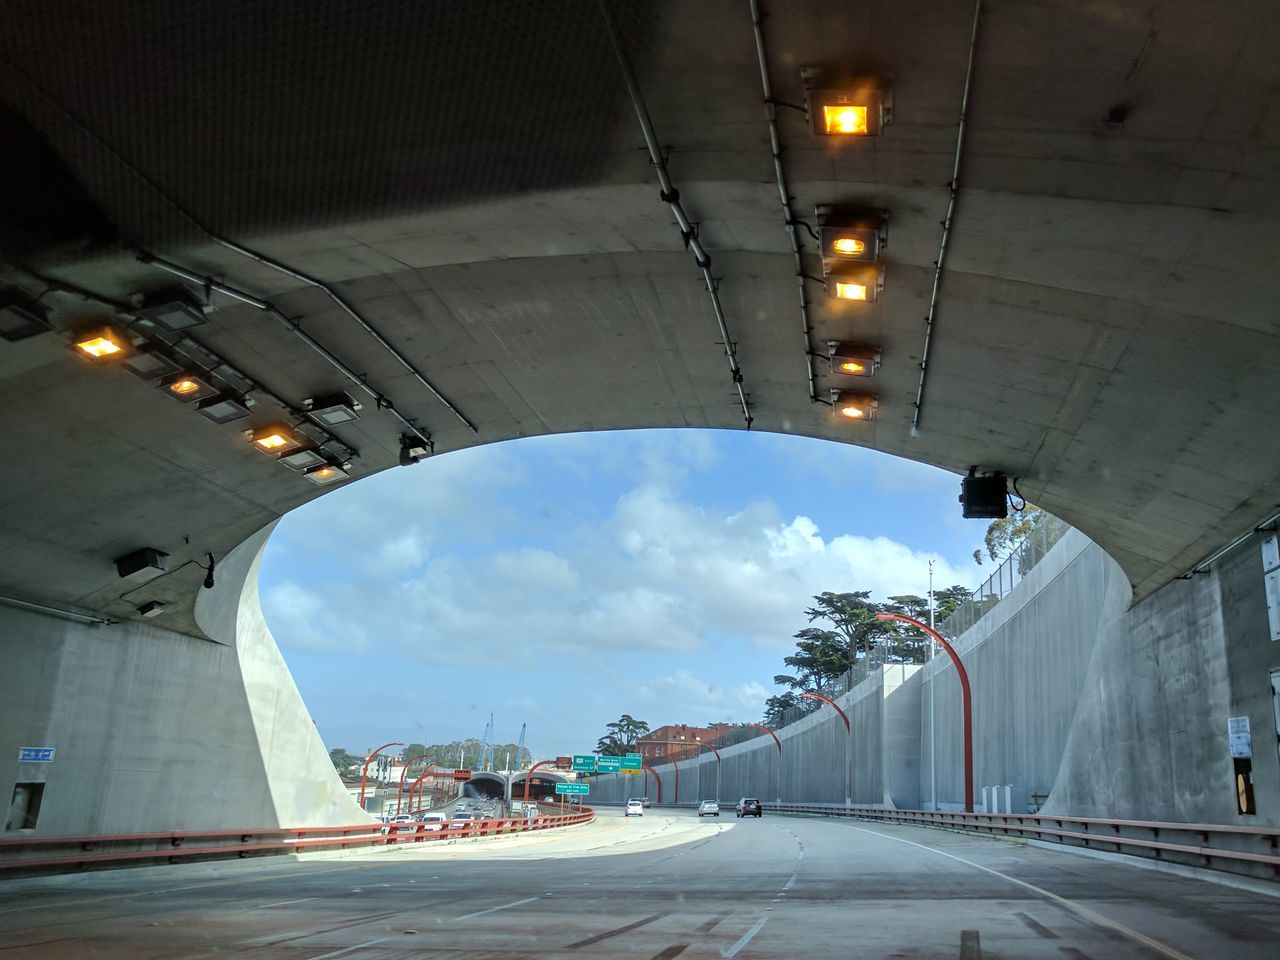 Emerhing grom tunnel on san francisco Cloud - Sky Sky No People Innovation Day Outdoors Architecture Tunnel Tunnel View Road City Built Structure Illuminated The City Light